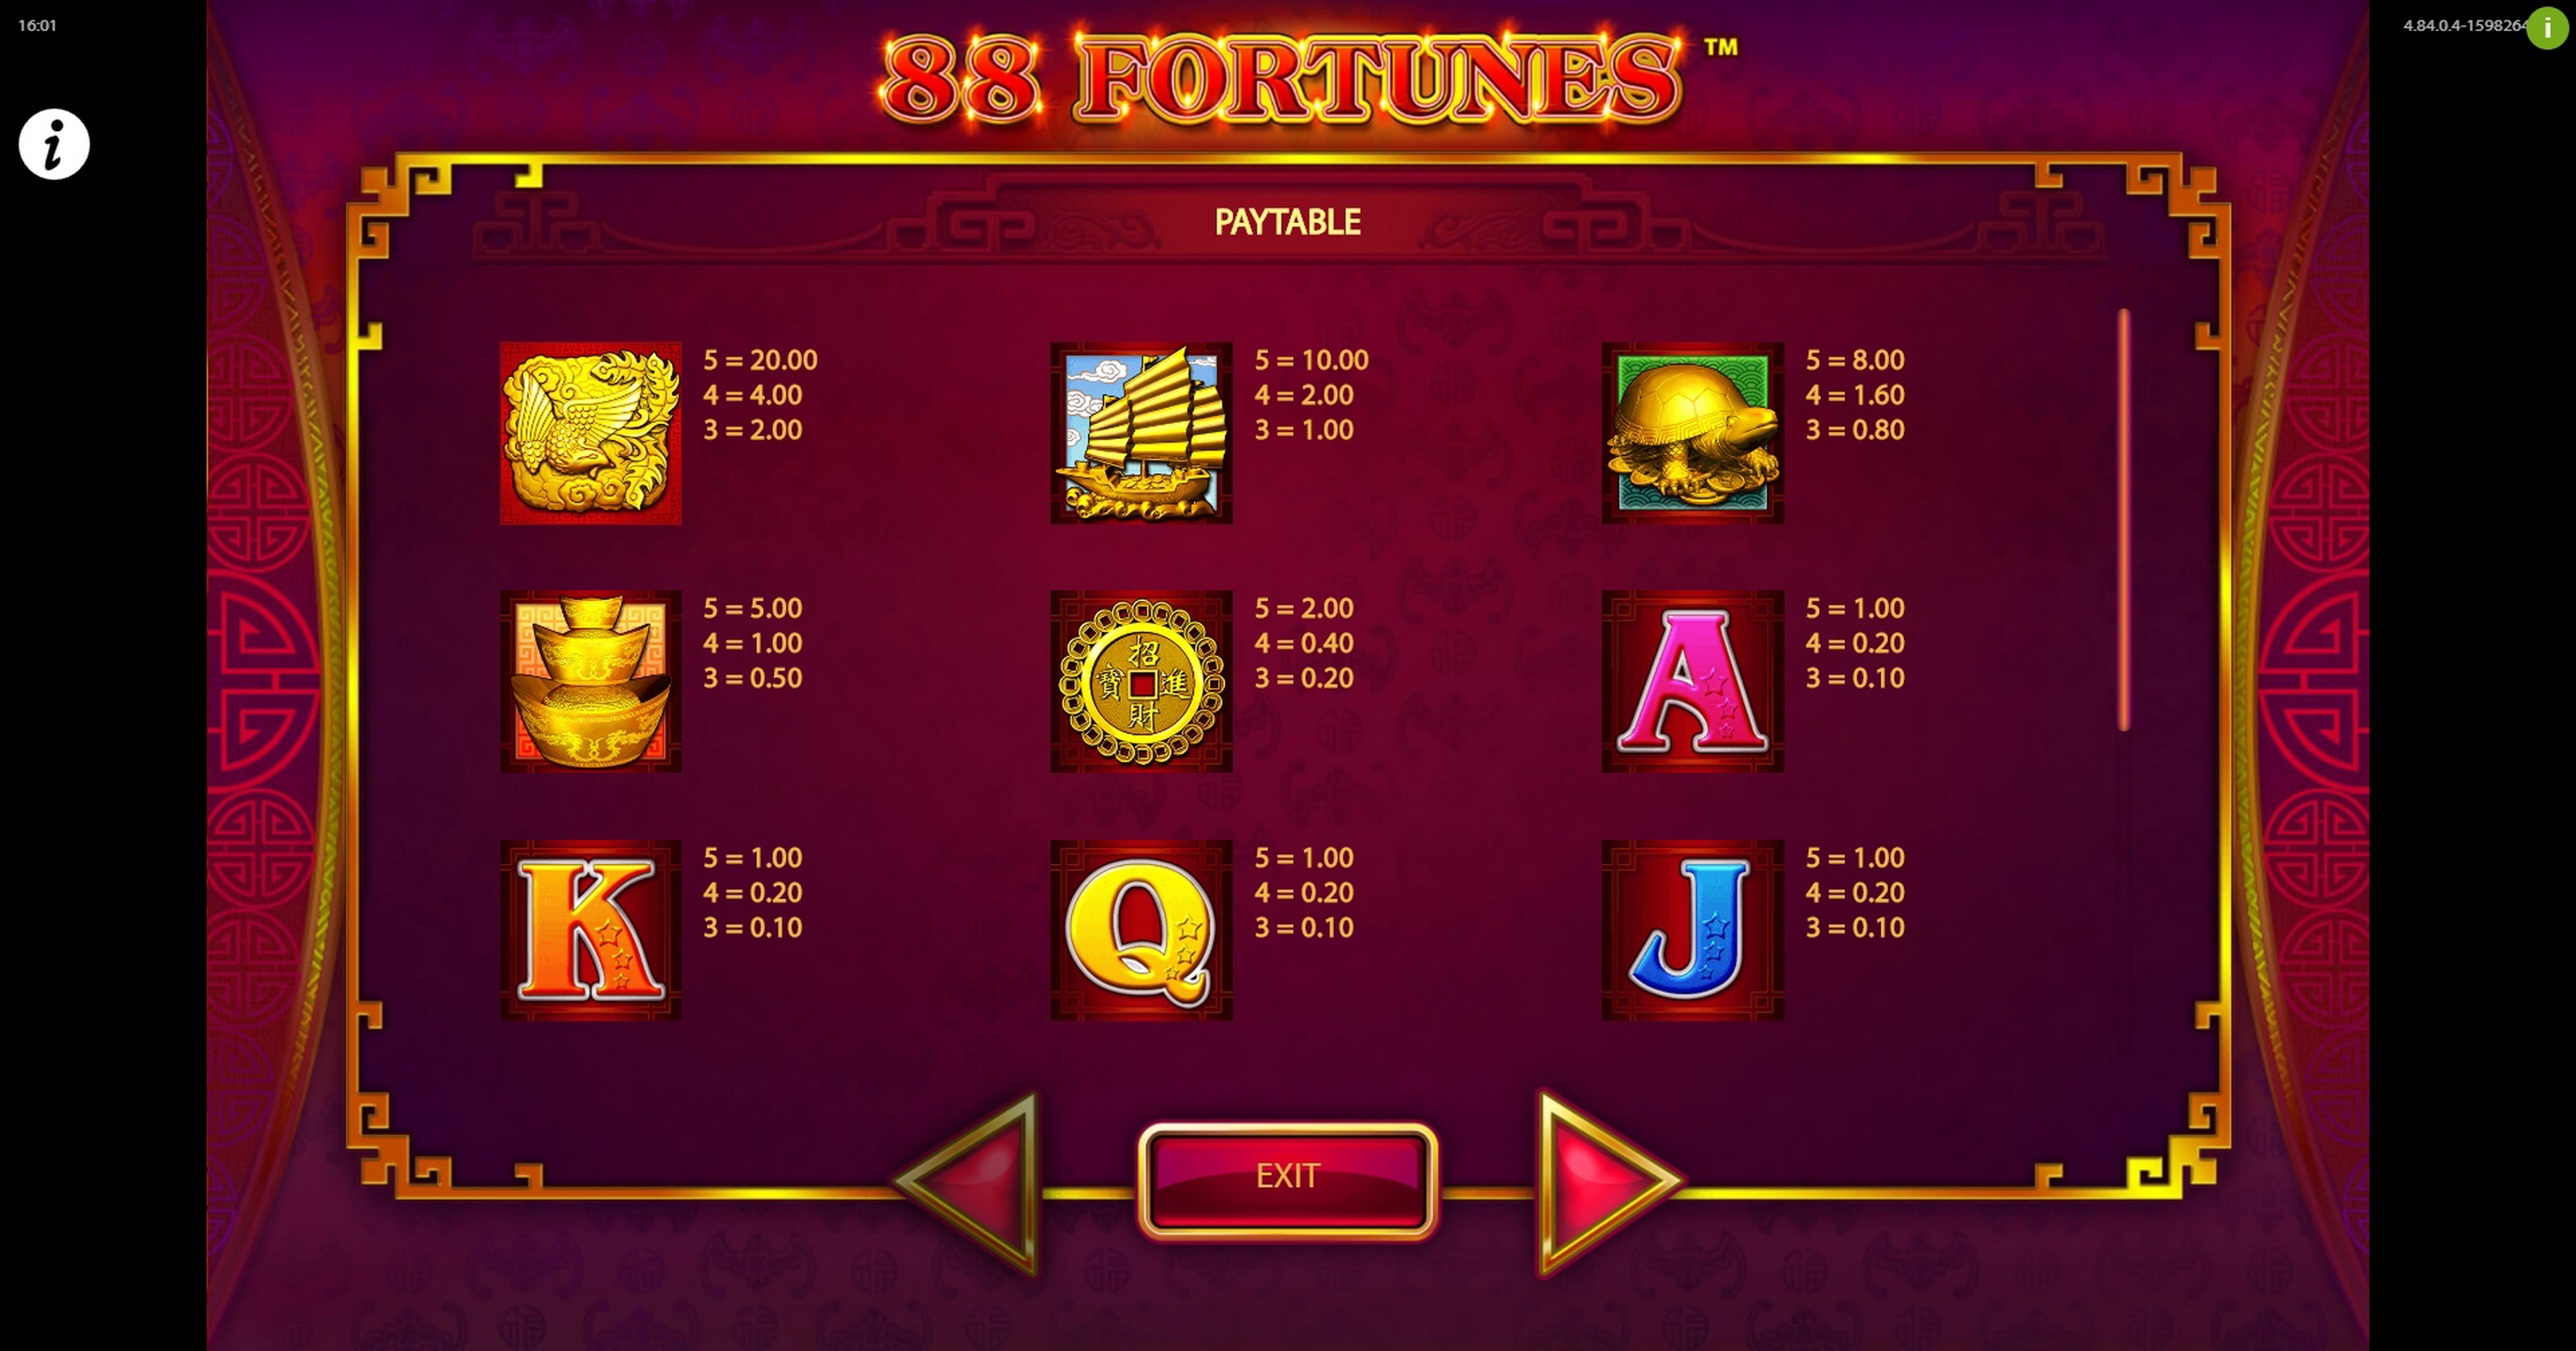 Info of 88 Fortunes Slot Game by SG